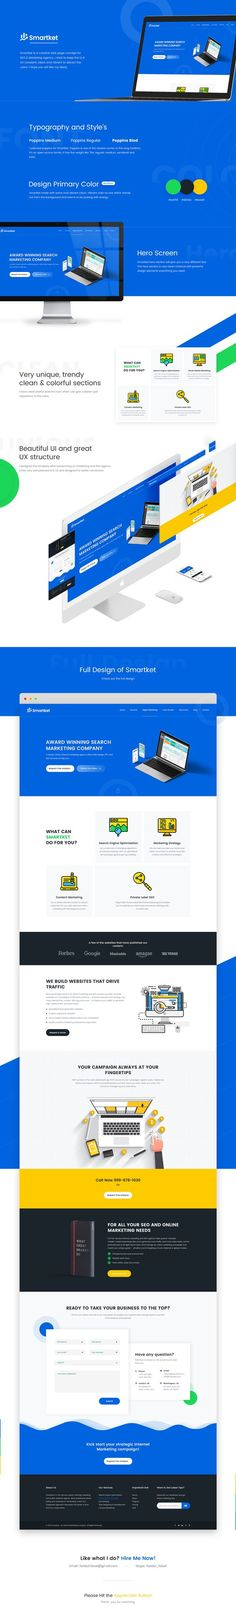 Smartket is a creative web page concept for SEO & Marketing Agency. I tried to keep the UI & UX constant, clean and vibrant to attract the users. I hope you will like my ideas.: